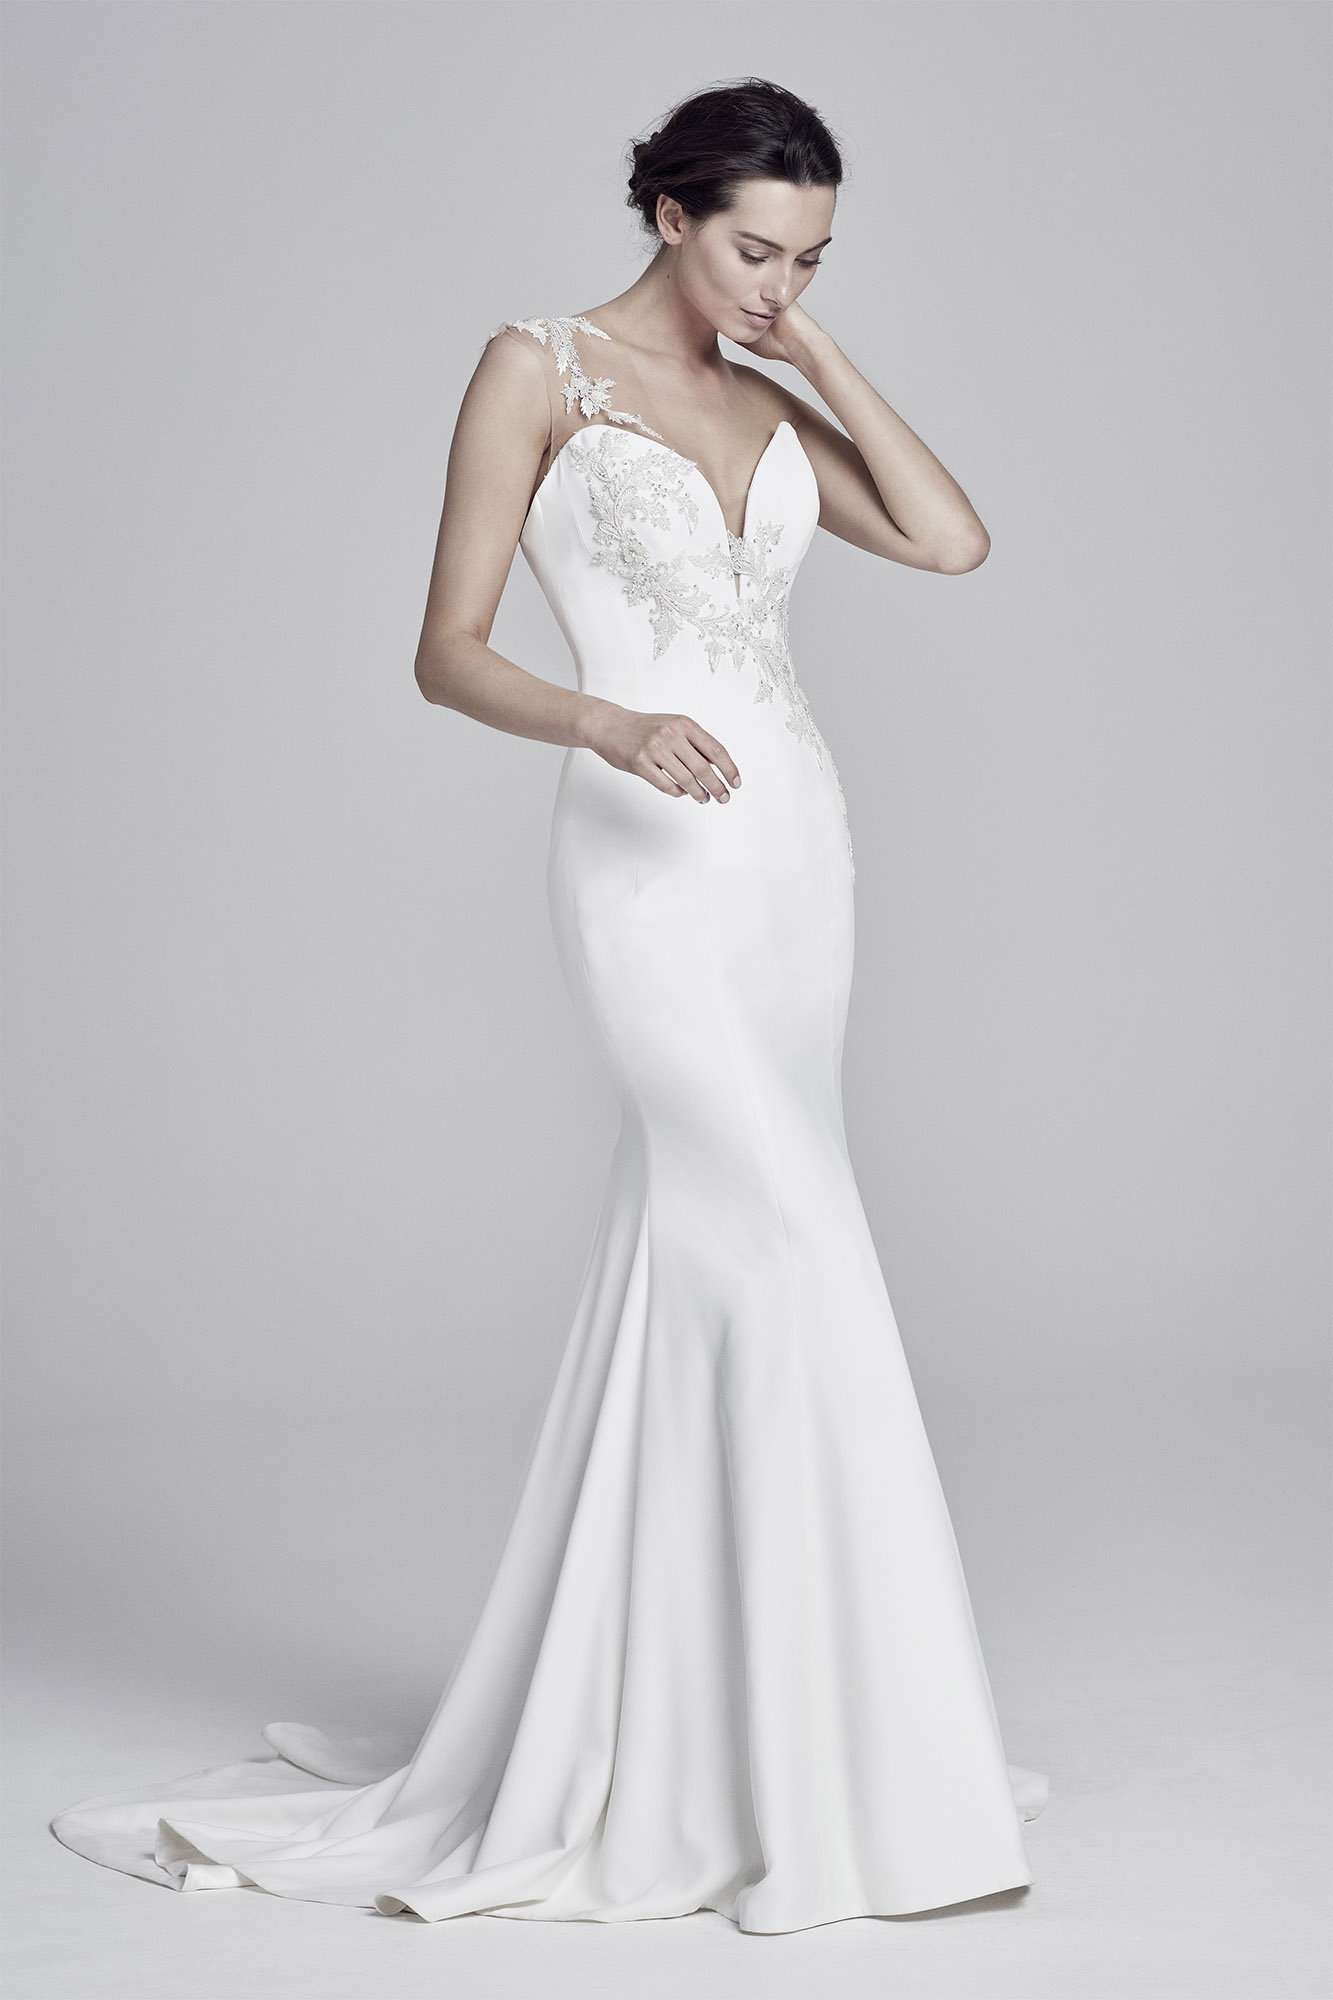 Ophelia  Collections 2019 Lookbook  UK designer wedding dresses